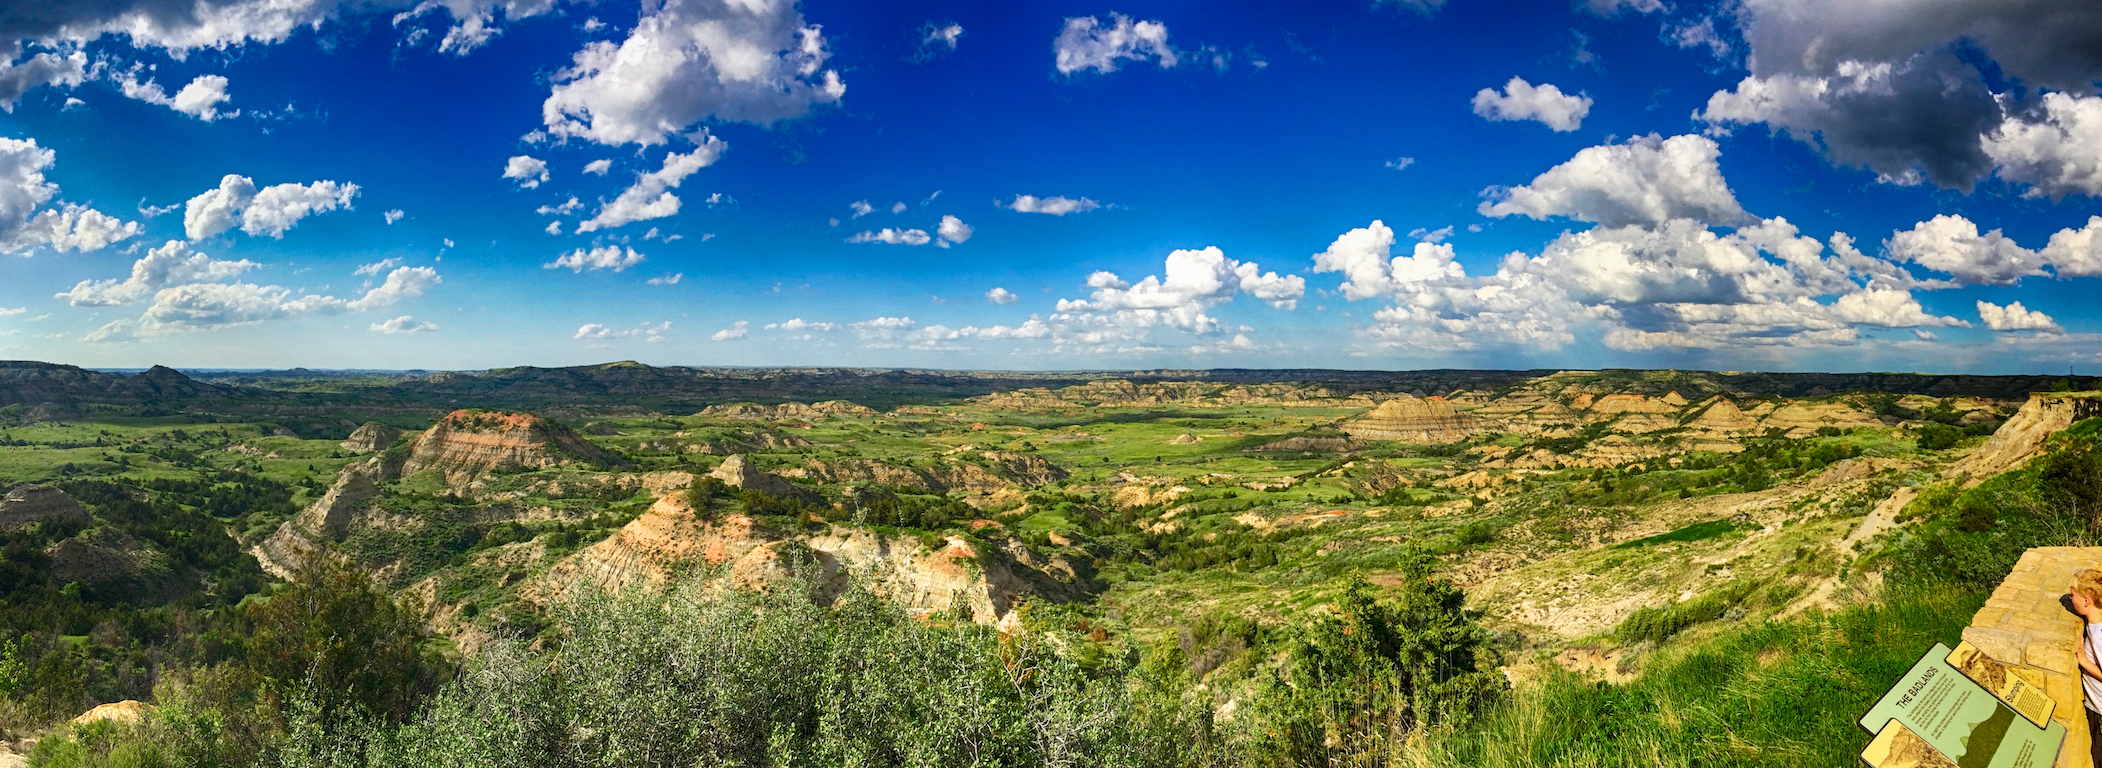 Painted Canyon, Theodore Roosevelt National Park